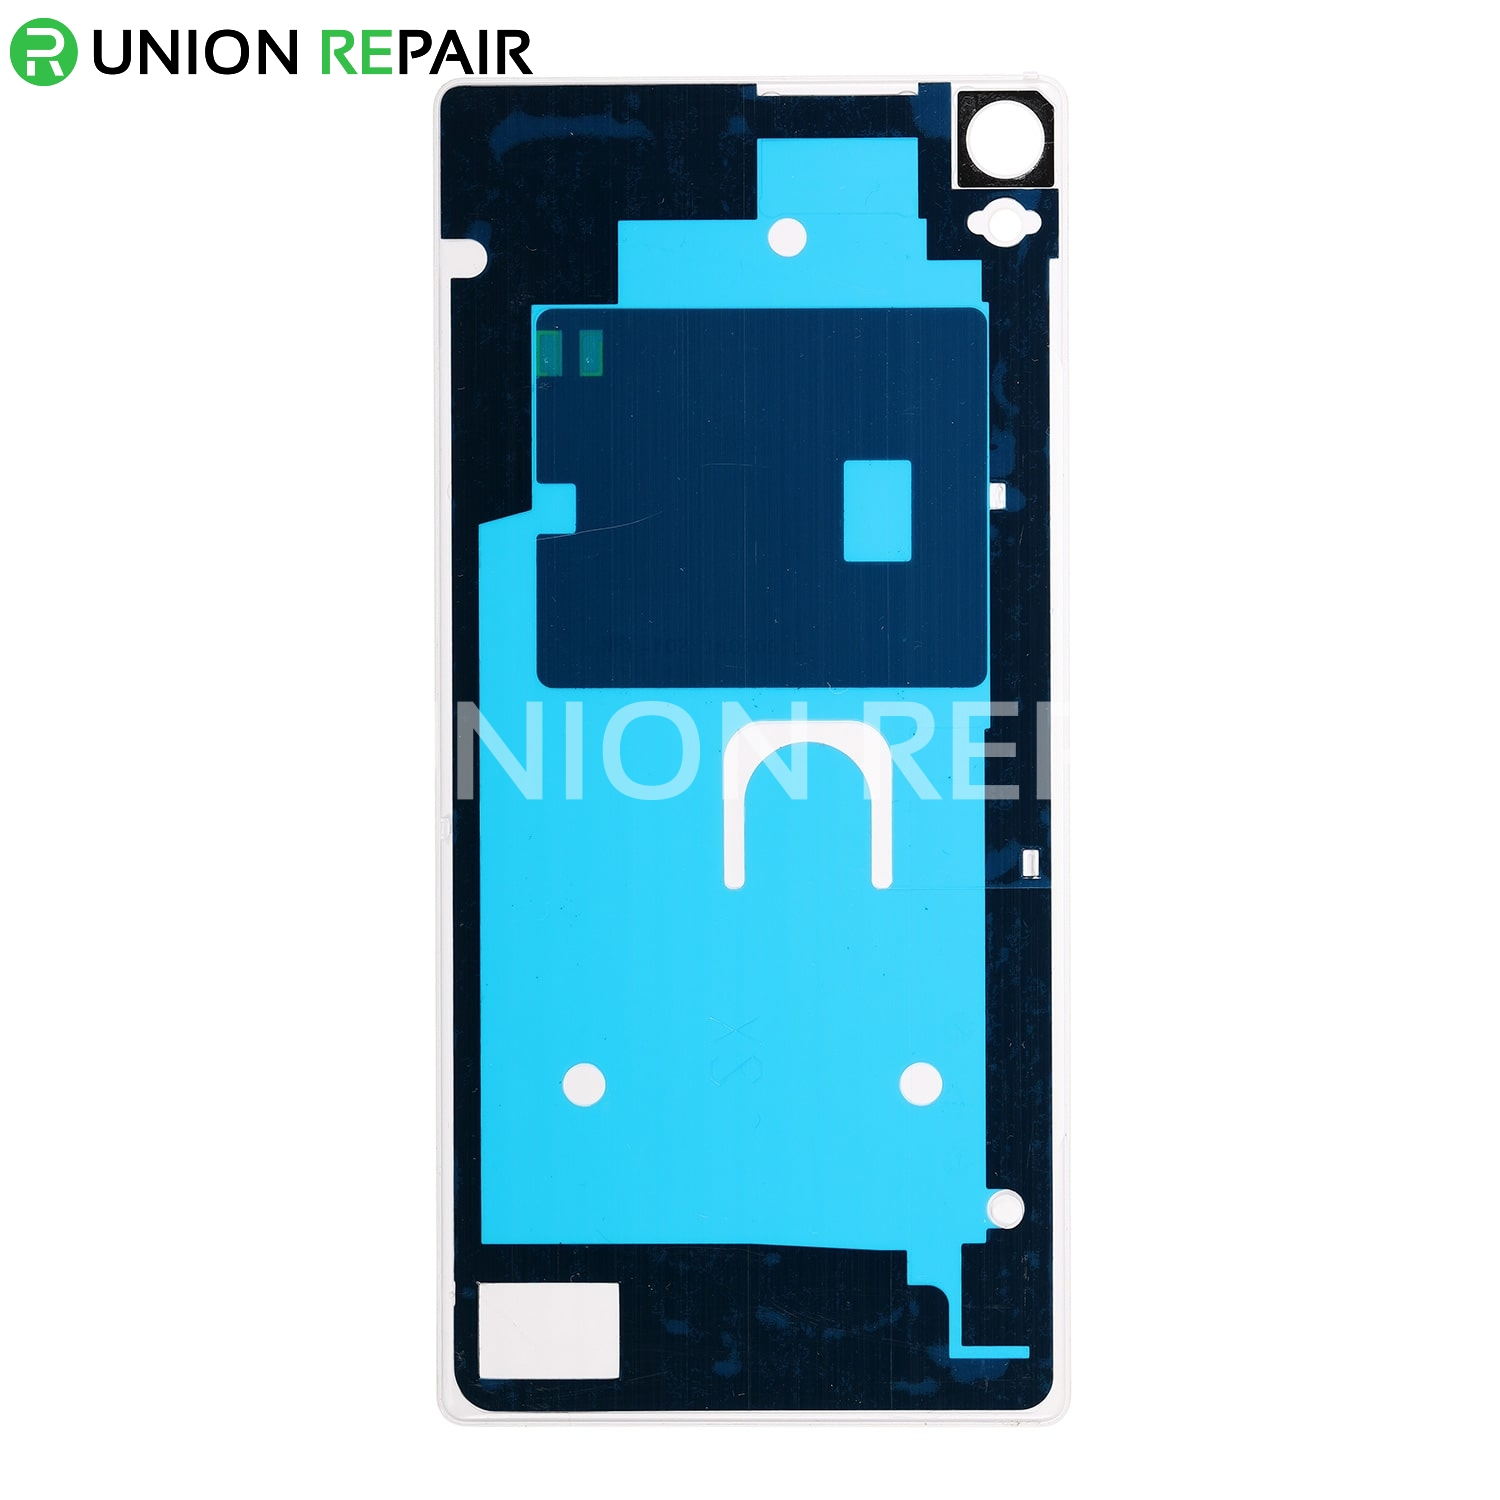 Replacement for Sony Xperia XA Ultra Battery Door - Lime Gold